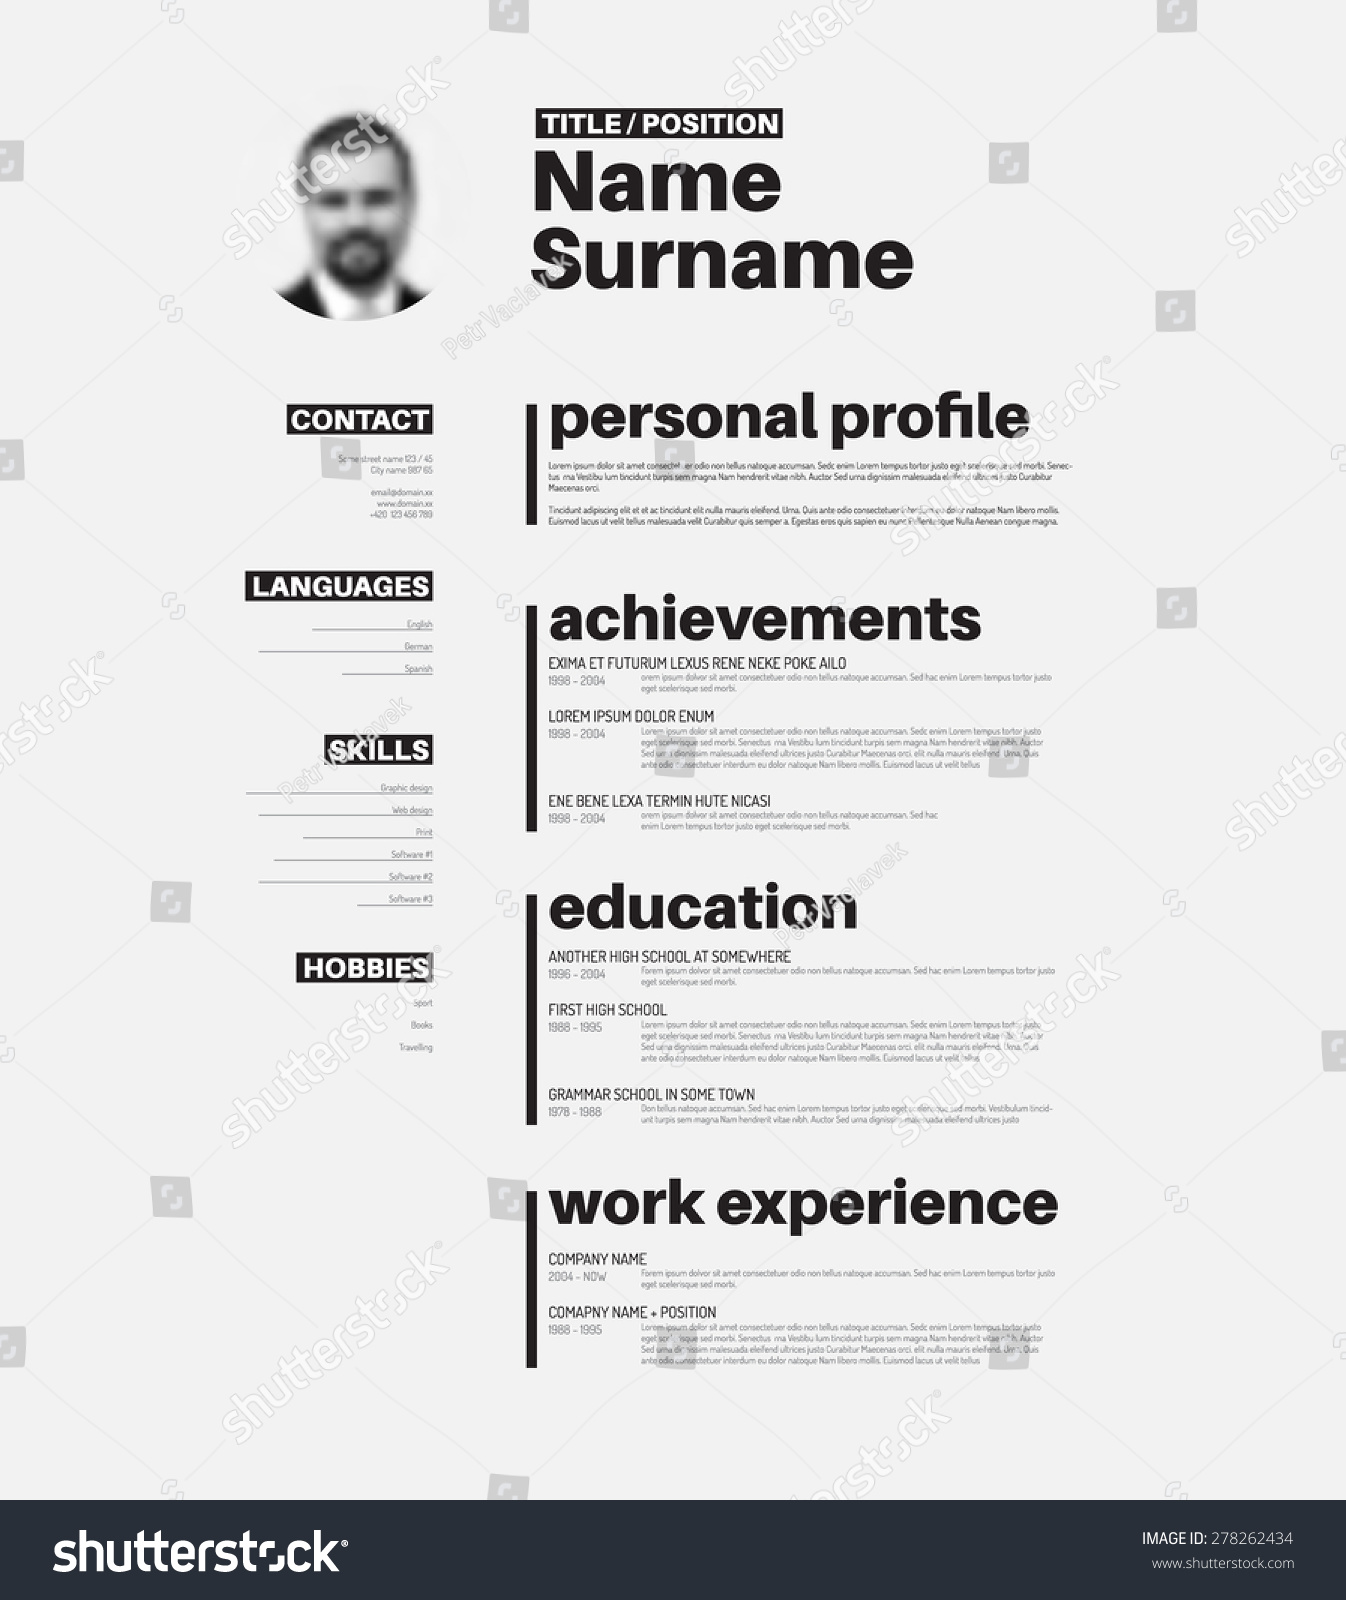 how to create nice resume create curriculum vitae or resume online easily pdfcv vector mini st